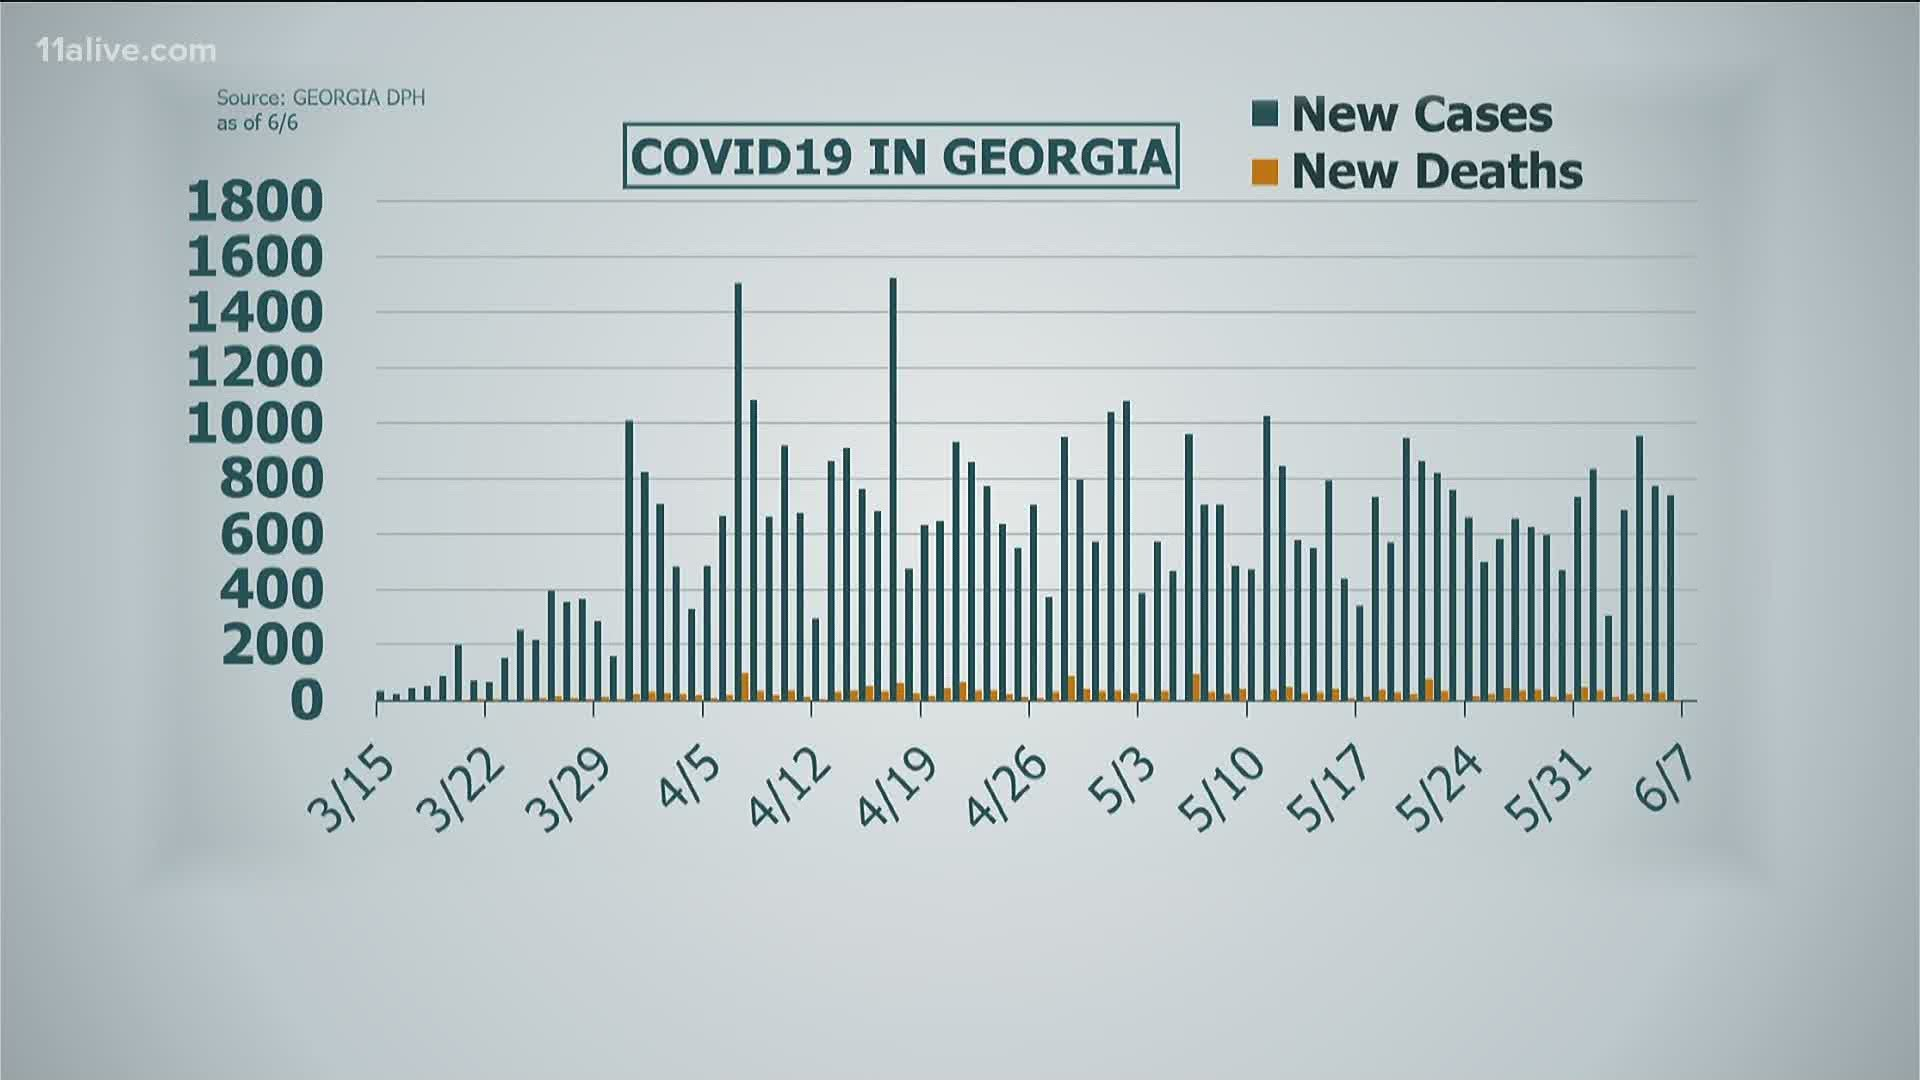 Coronavirus In Georgia Latest Numbers June 8 11alive Com